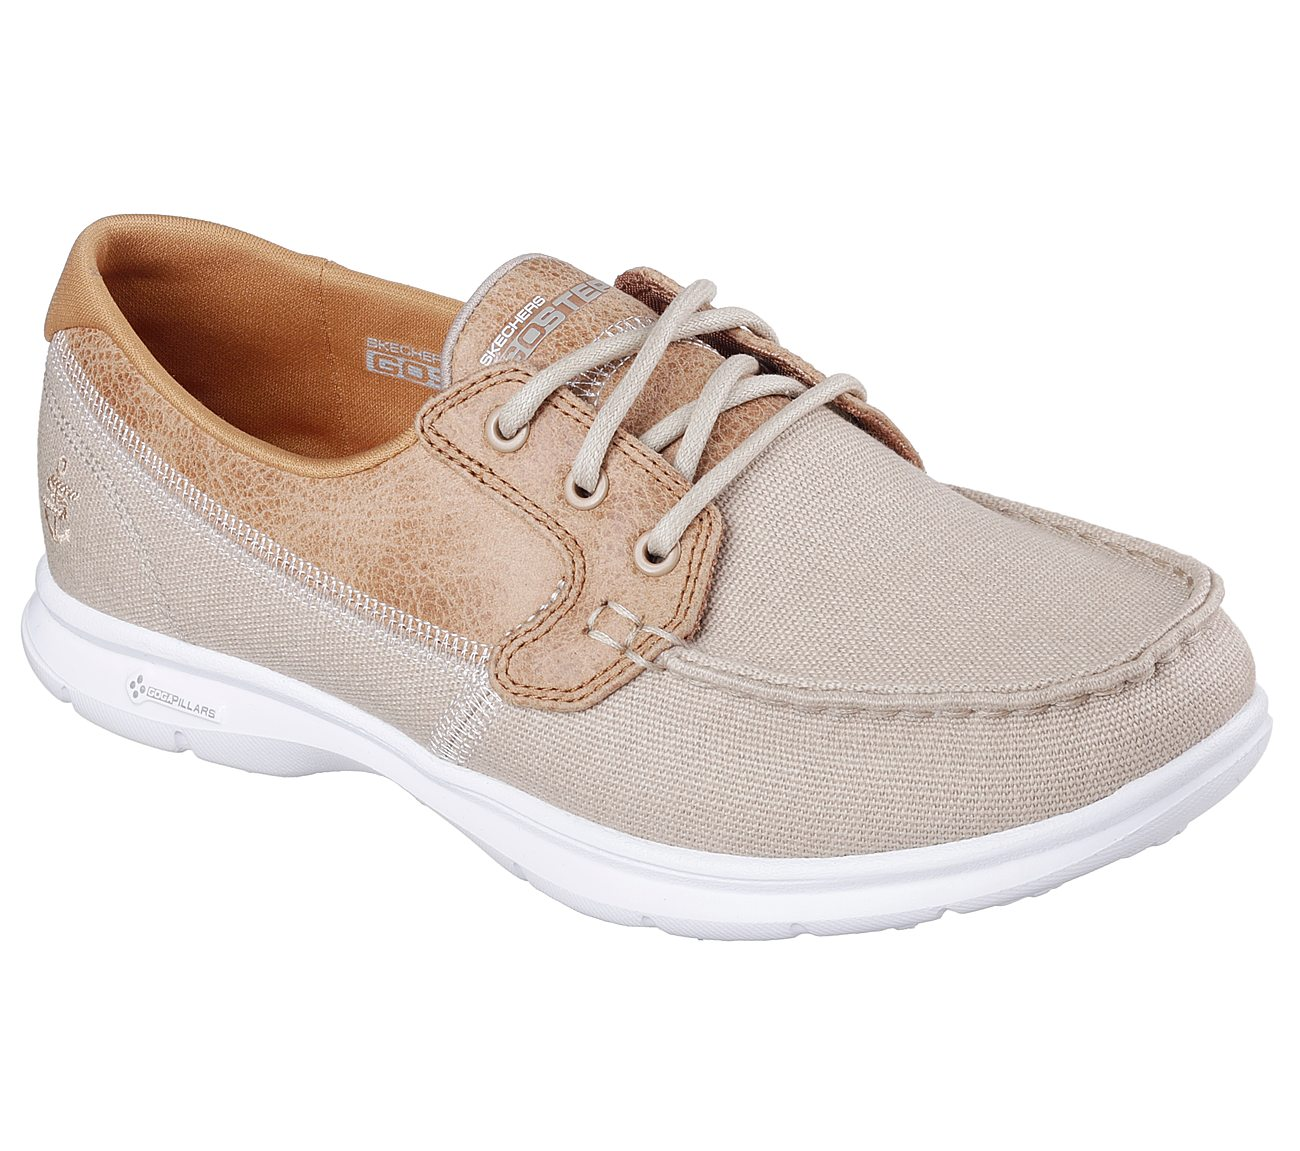 Skechers GO STEP Seashore